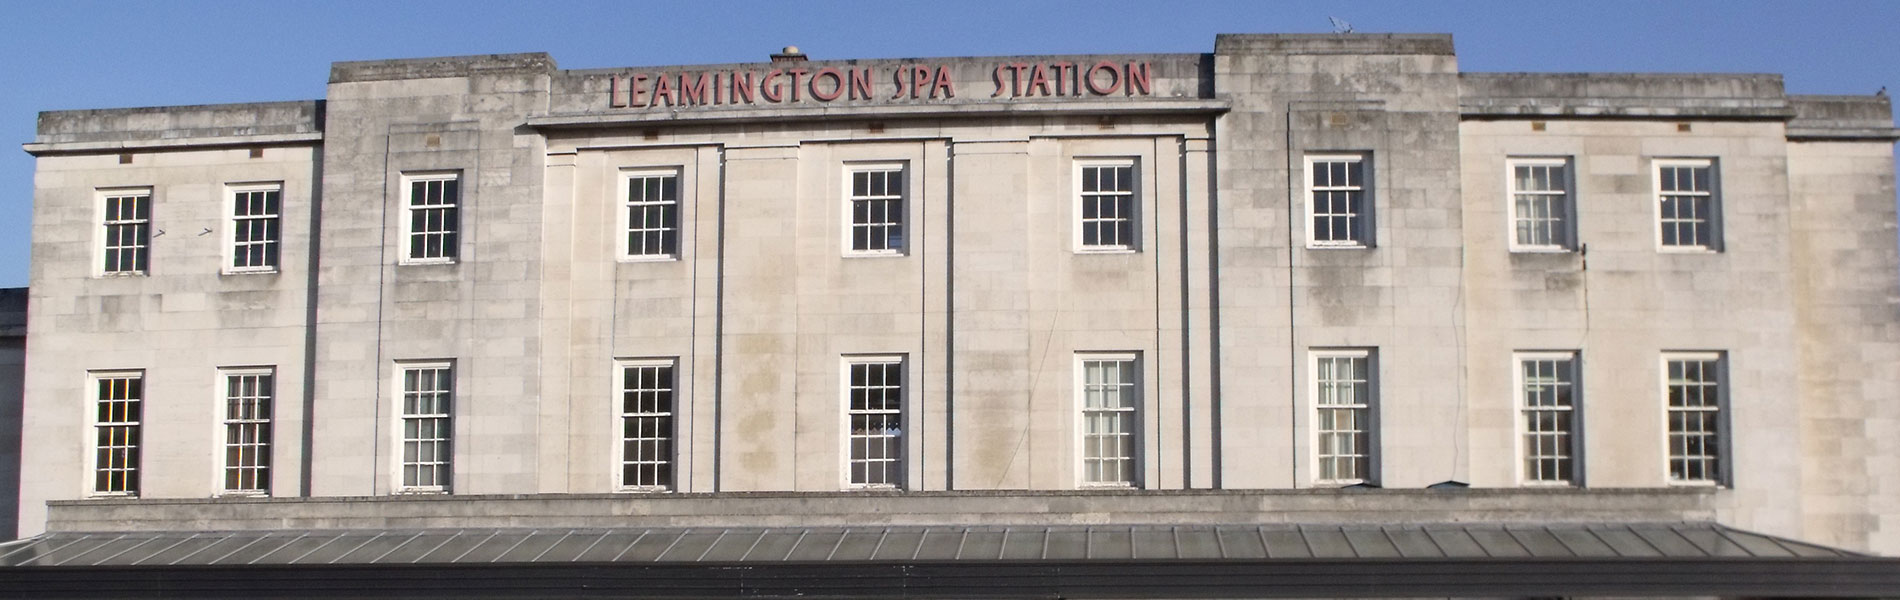 Commercial Window Cleaning at Leamington Spa Train Station